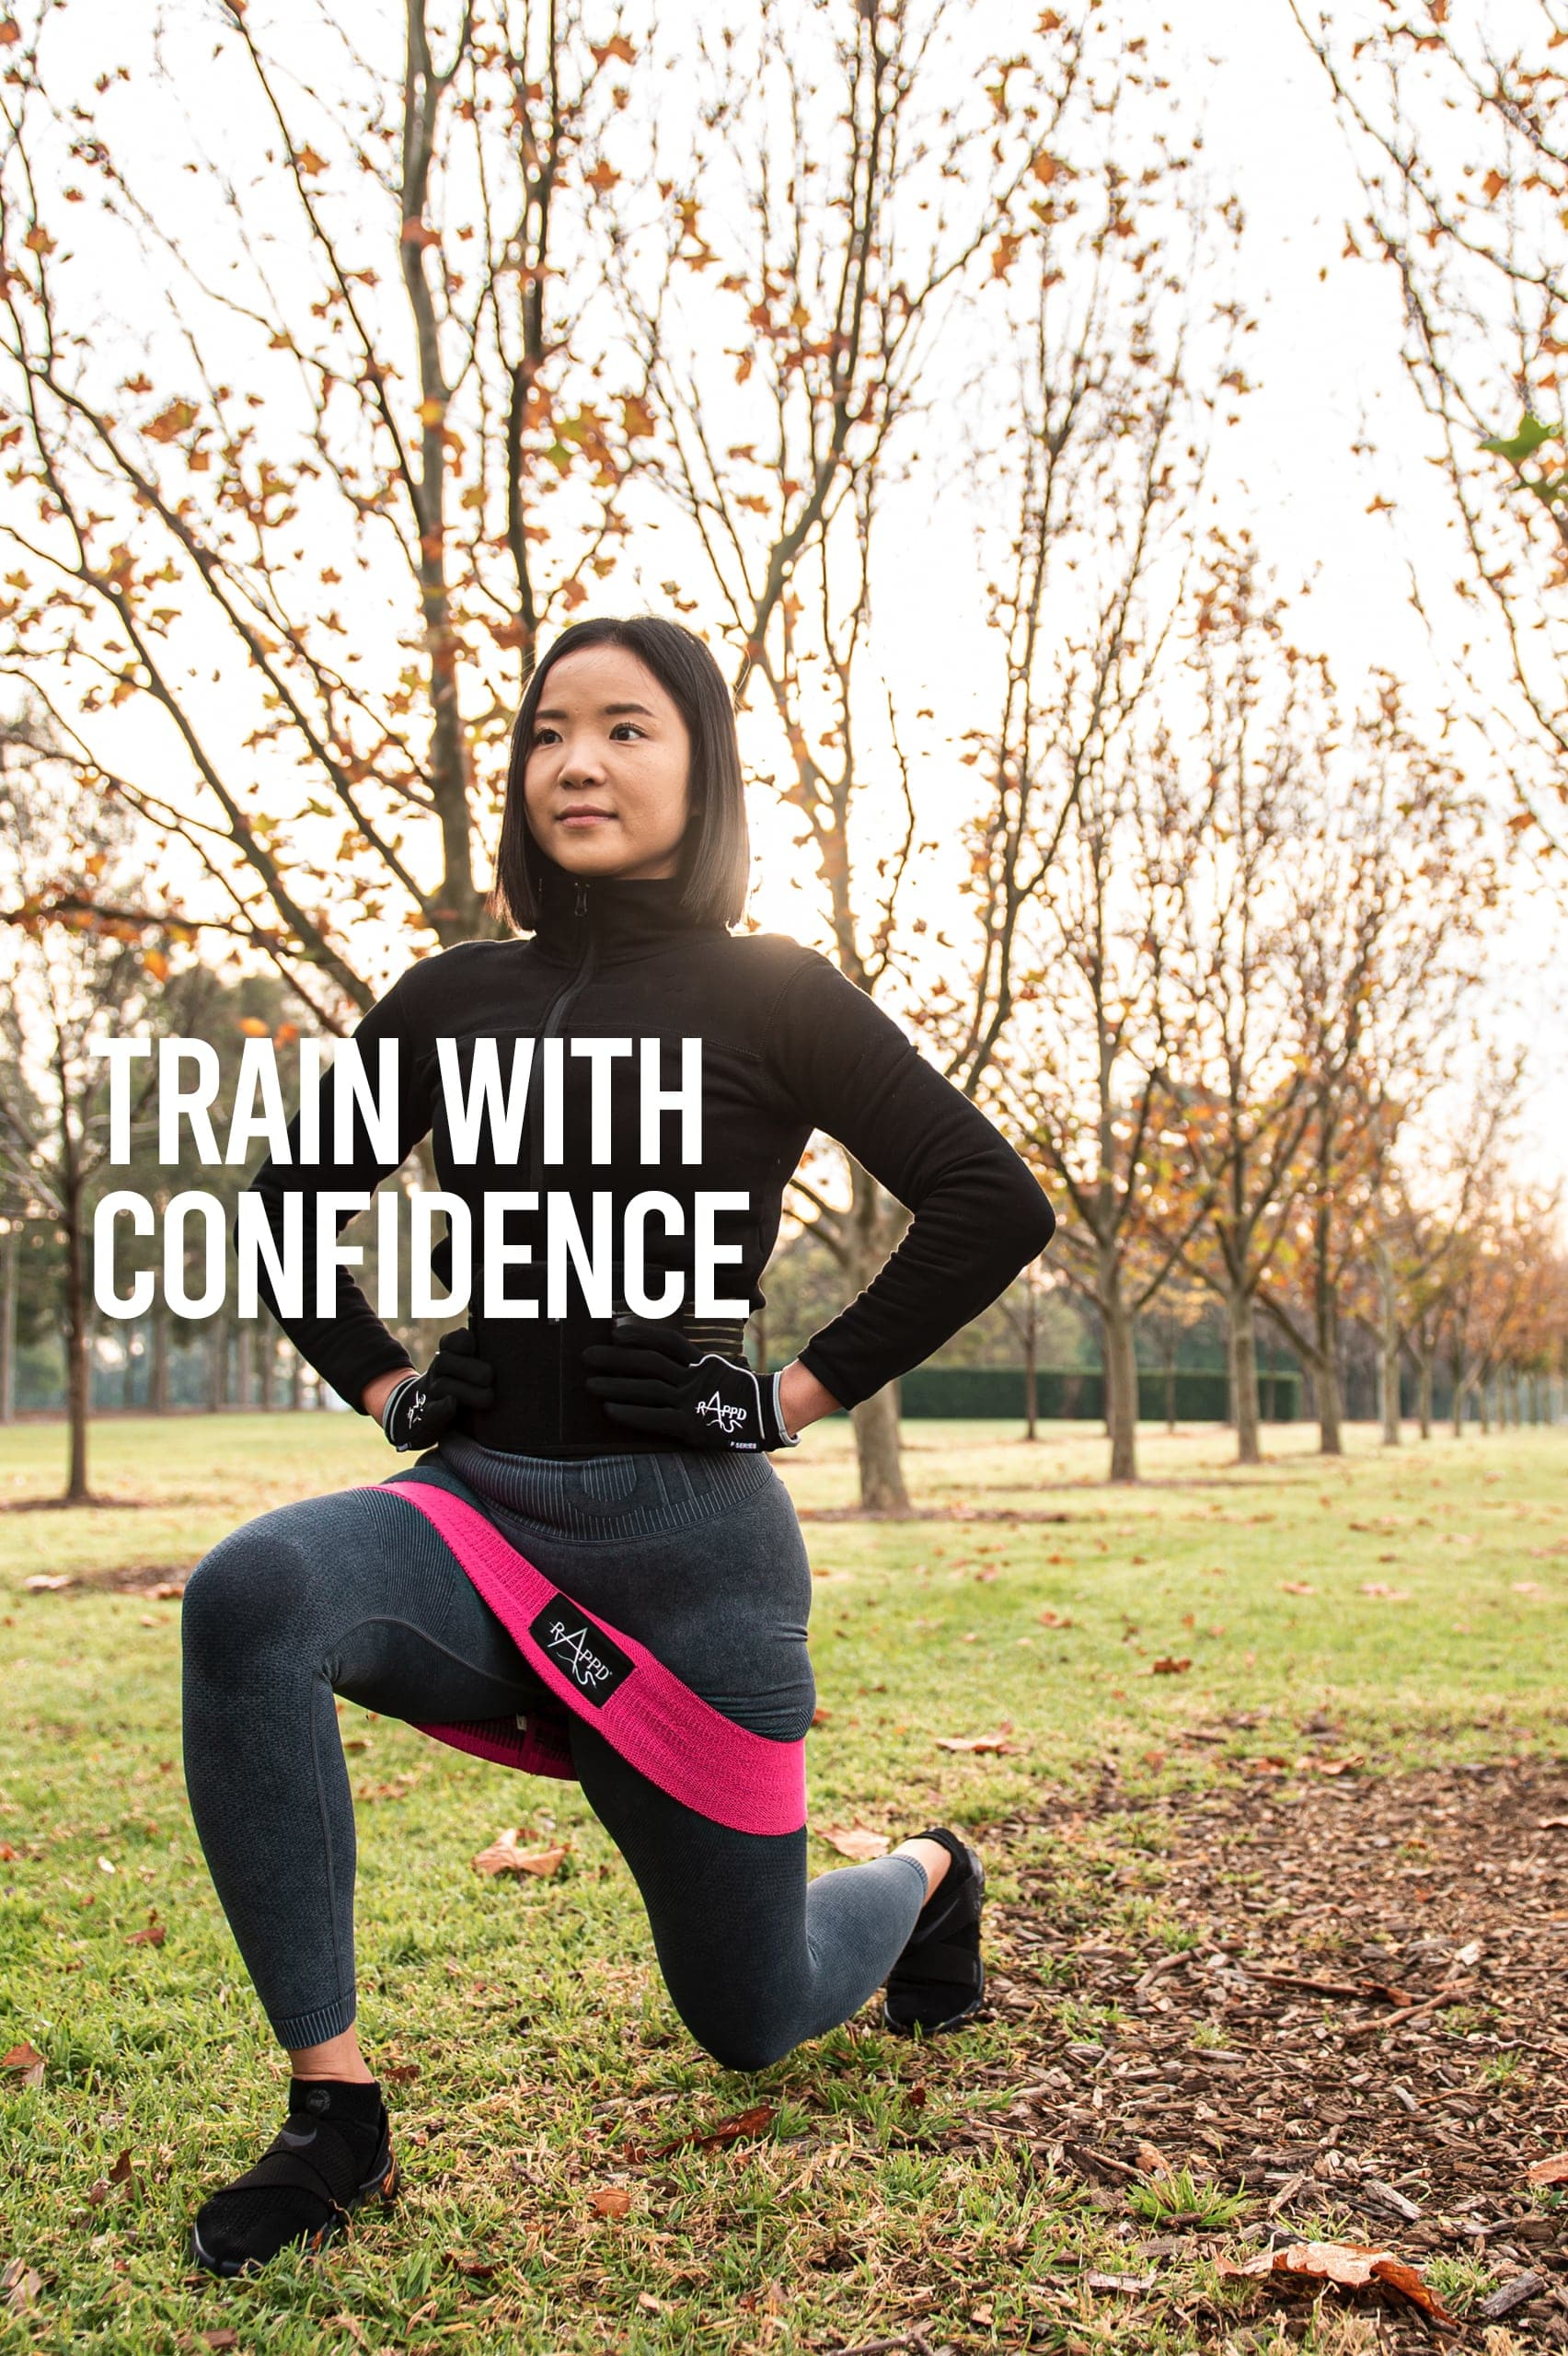 Rappd, train with confidence